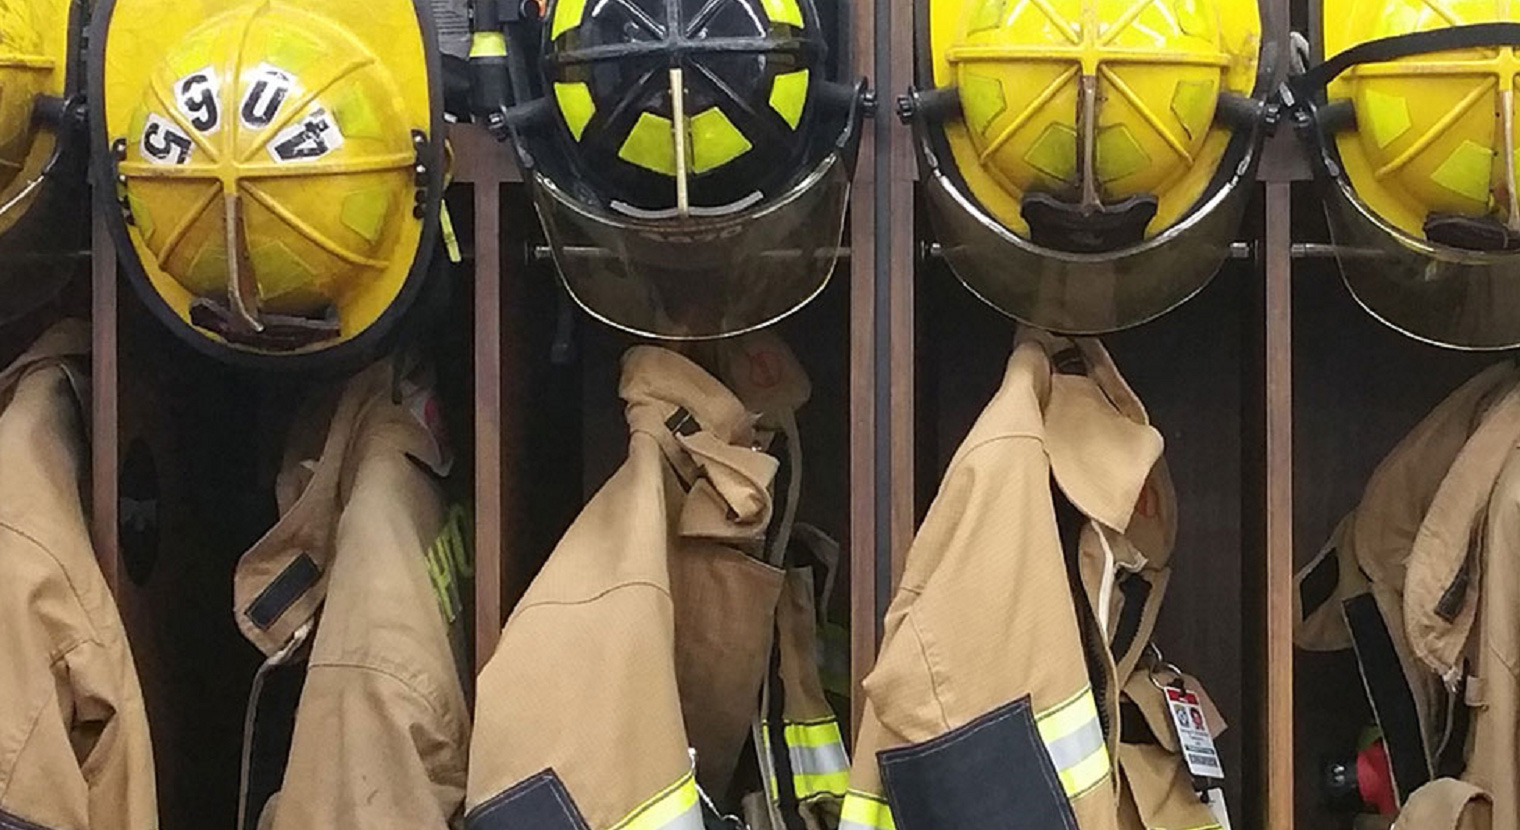 Firefighters' helmets and jackets hanging in a line